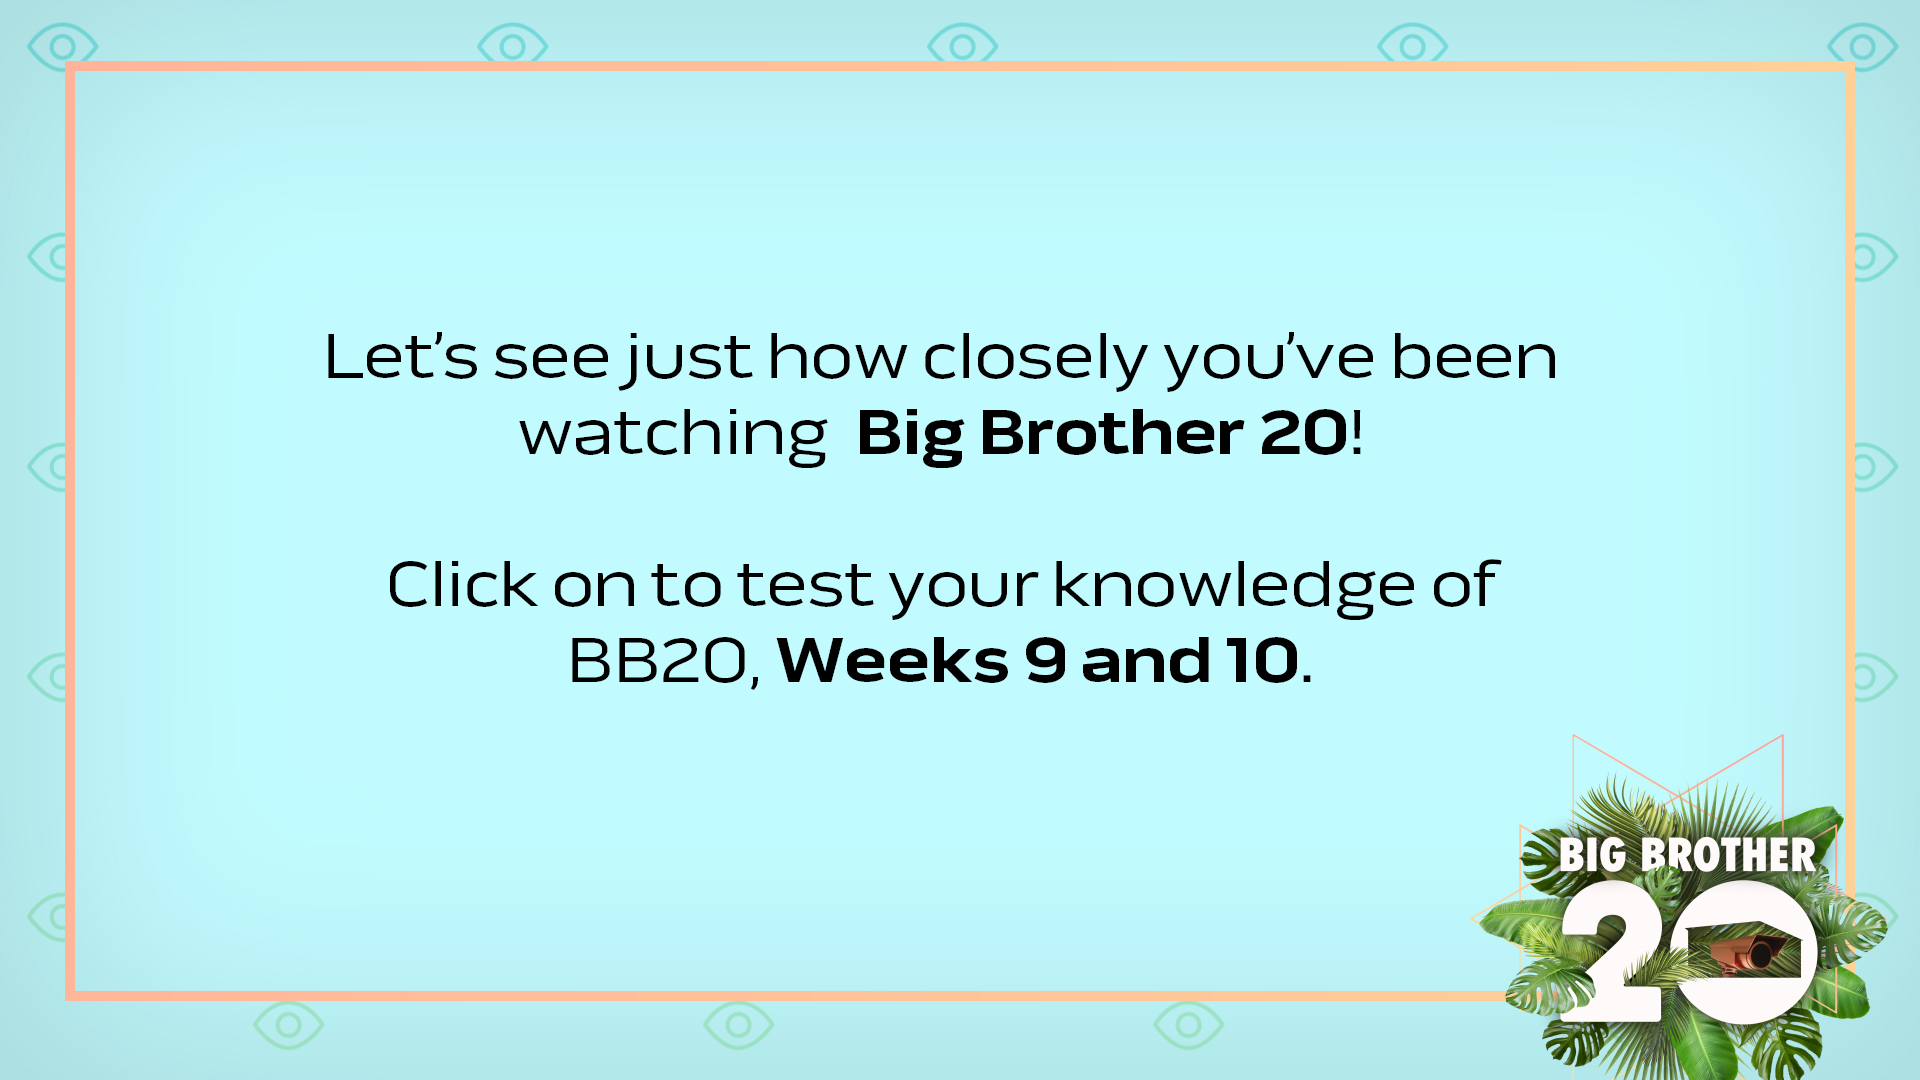 How closely have you been watching Big Brother?